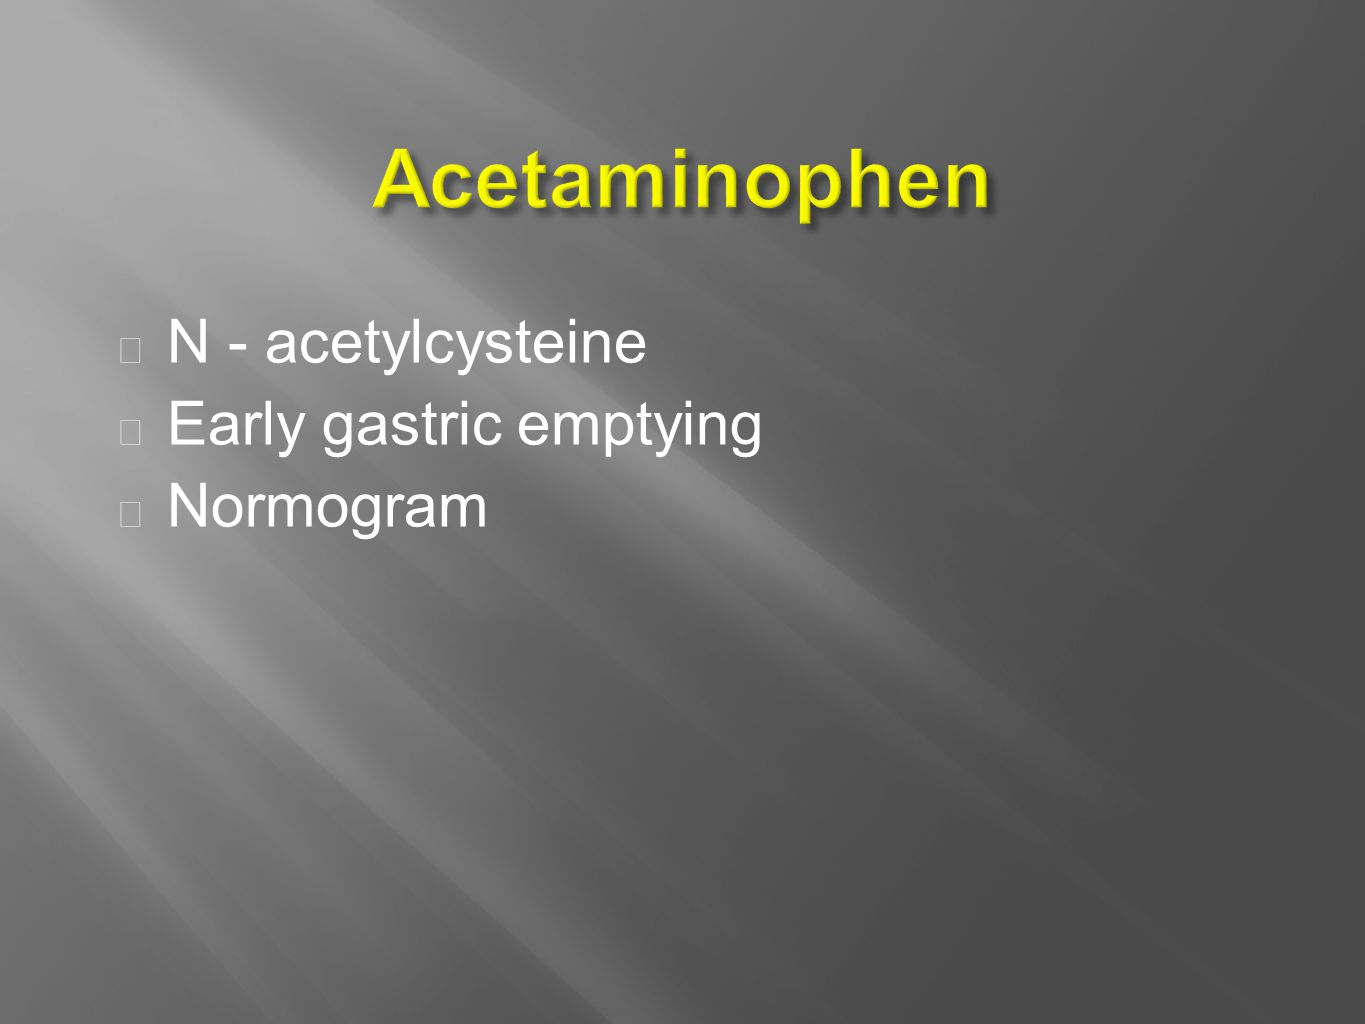  N - acetylcysteine  Early gastric emptying  Normogram